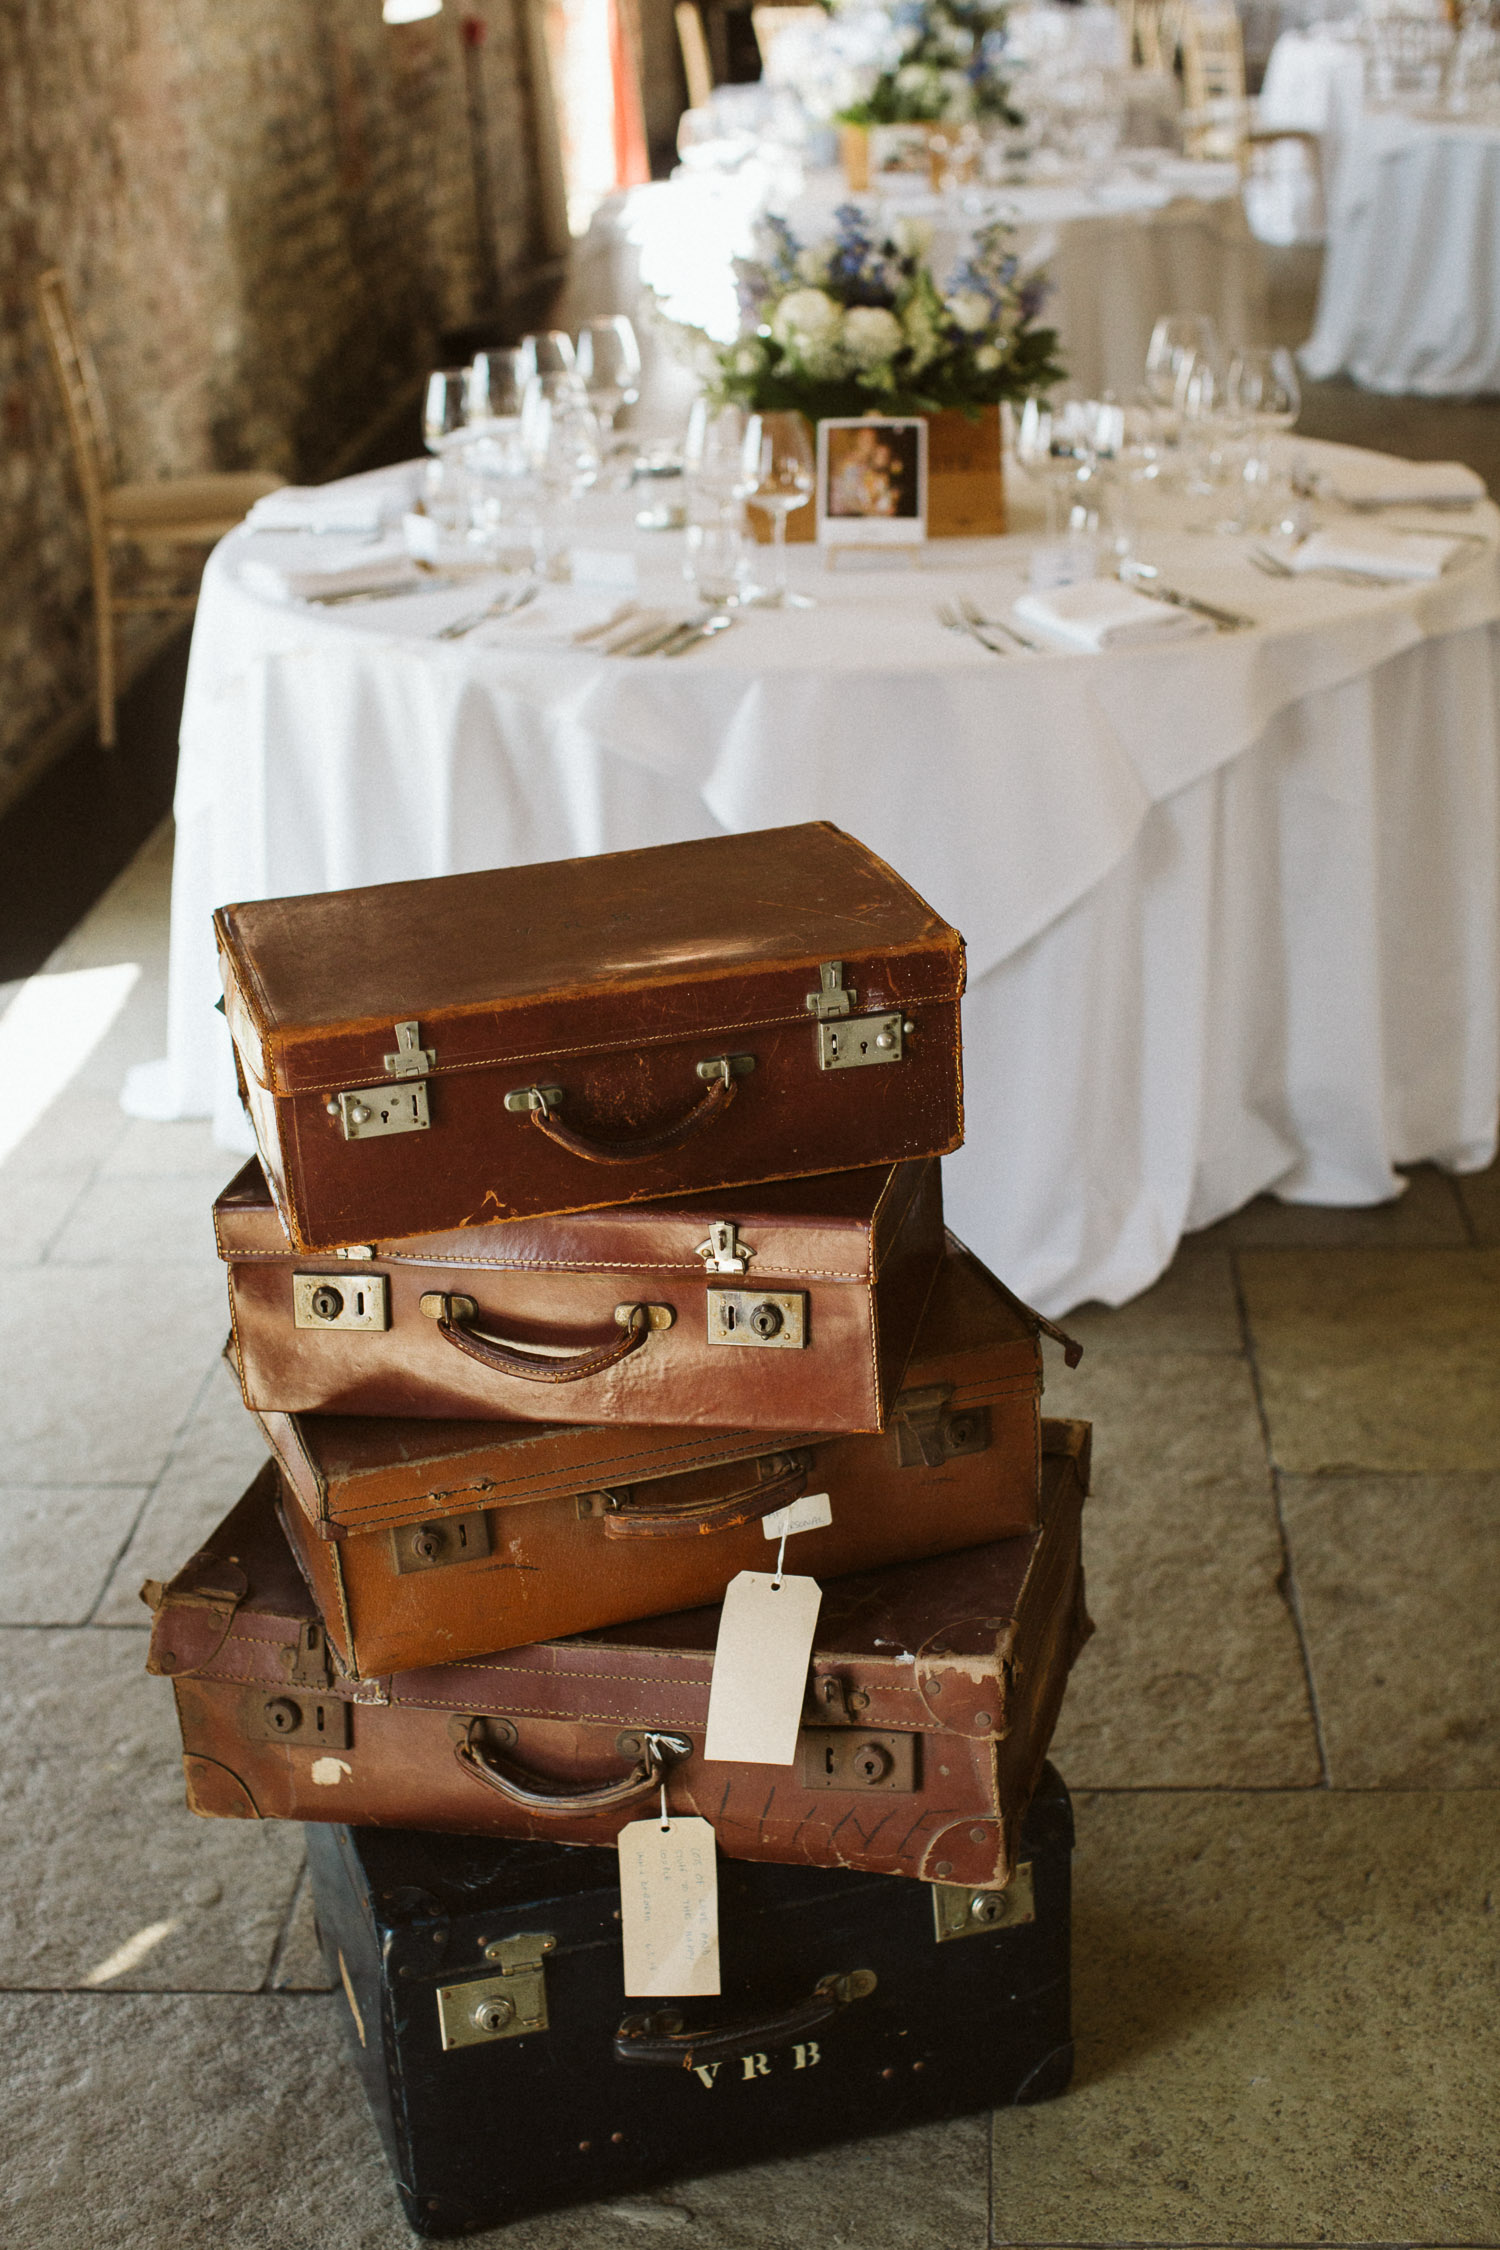 stacked suitcases or a drinks table?